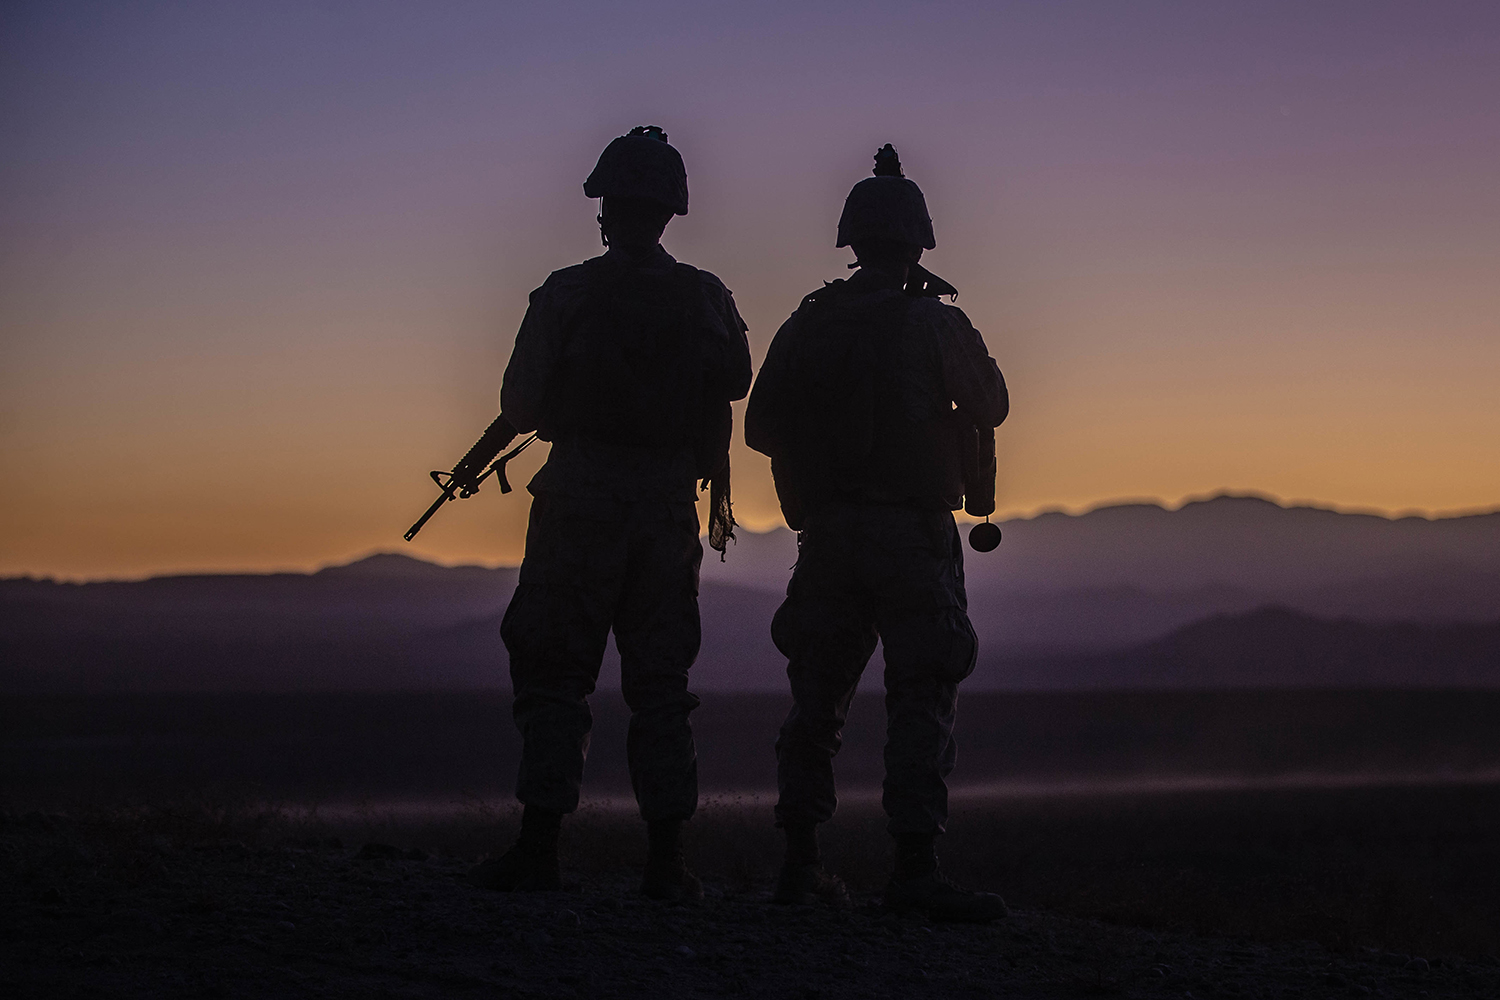 Marine Corps Staff Sgt. William Huffman, left and Cpl. Stephen Gibbons prepare to depart an observation point during Integrated Training Exercise (ITX) 1-20 at Marine Air Ground Combat Center Twentynine Palms, Calif., Oct. 28, 2019. (Cpl. Scott Jenkins/Marine Corps)